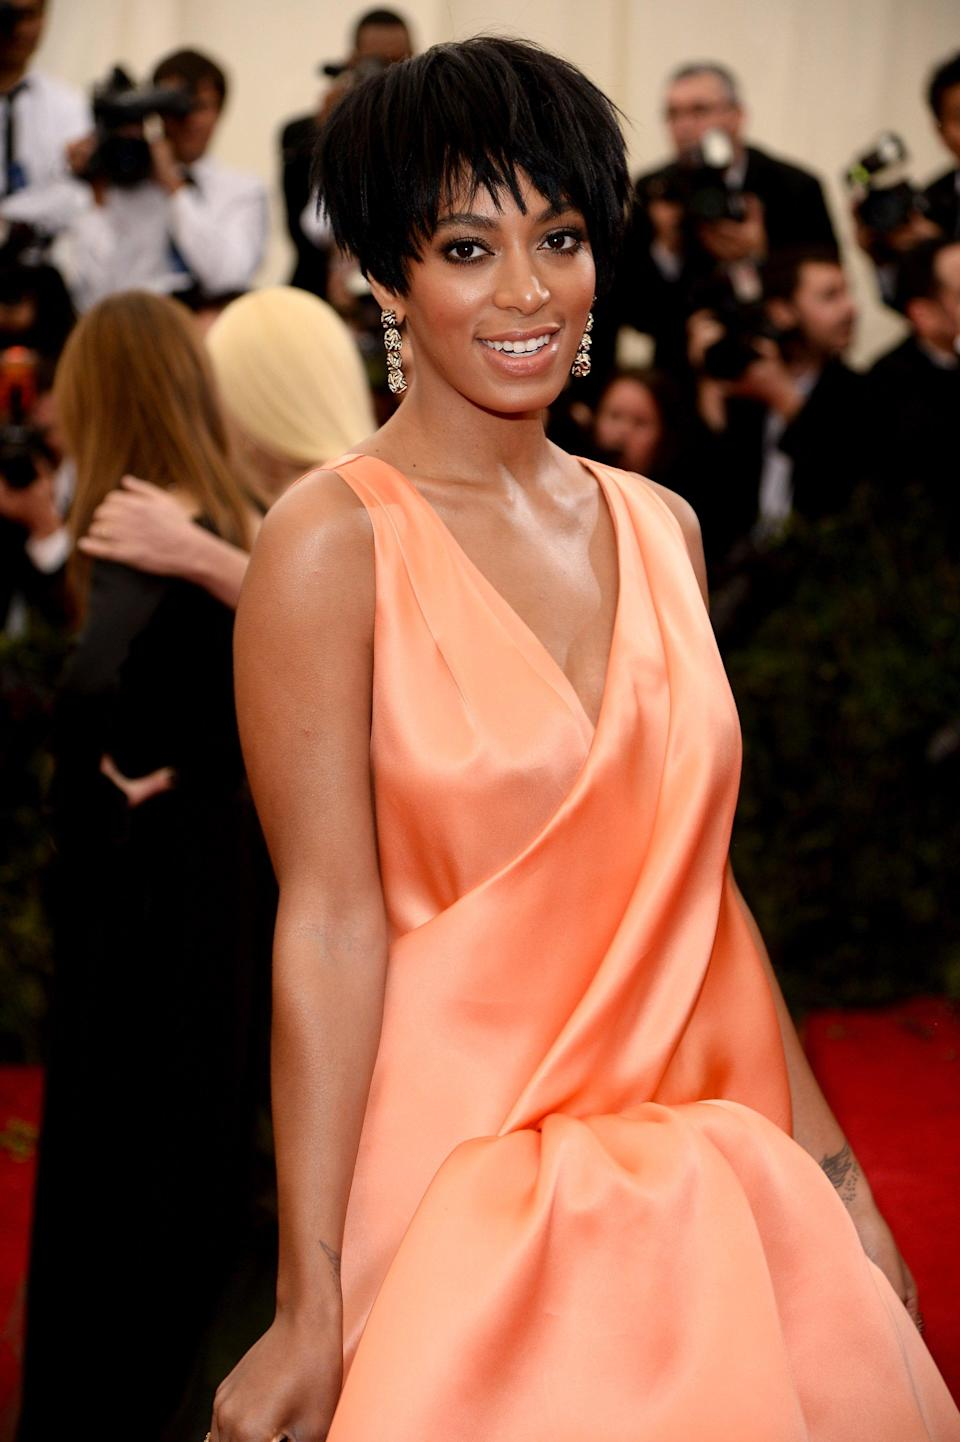 Solange Knowles Attacks Jay Z: Singer Yelled At